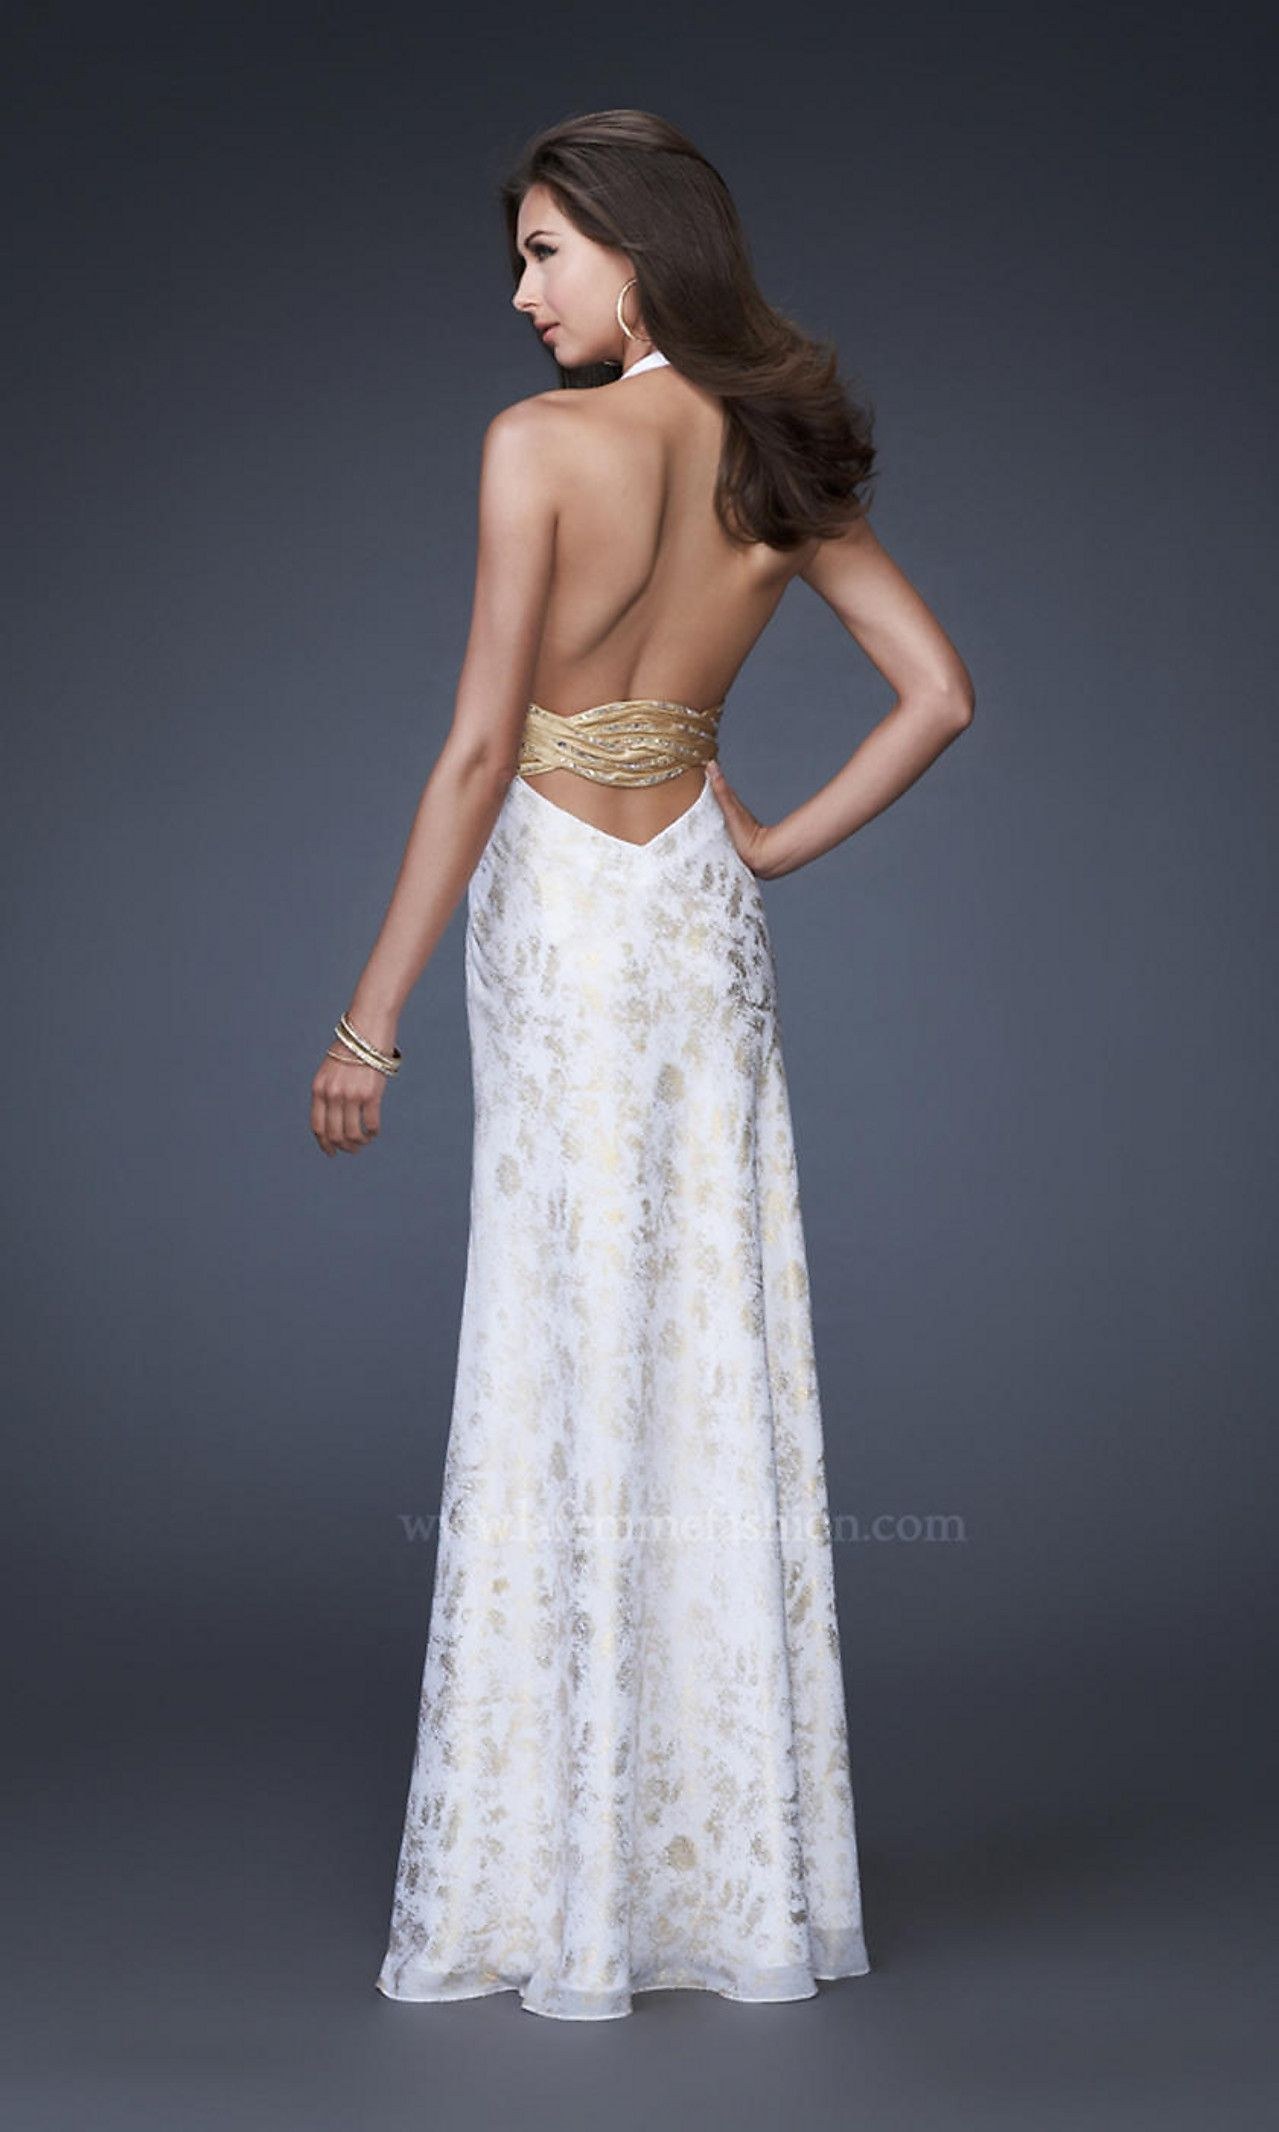 WHITE & GOLD LOW OPEN BACK EVENING GOWN | These Are a Few of My ...